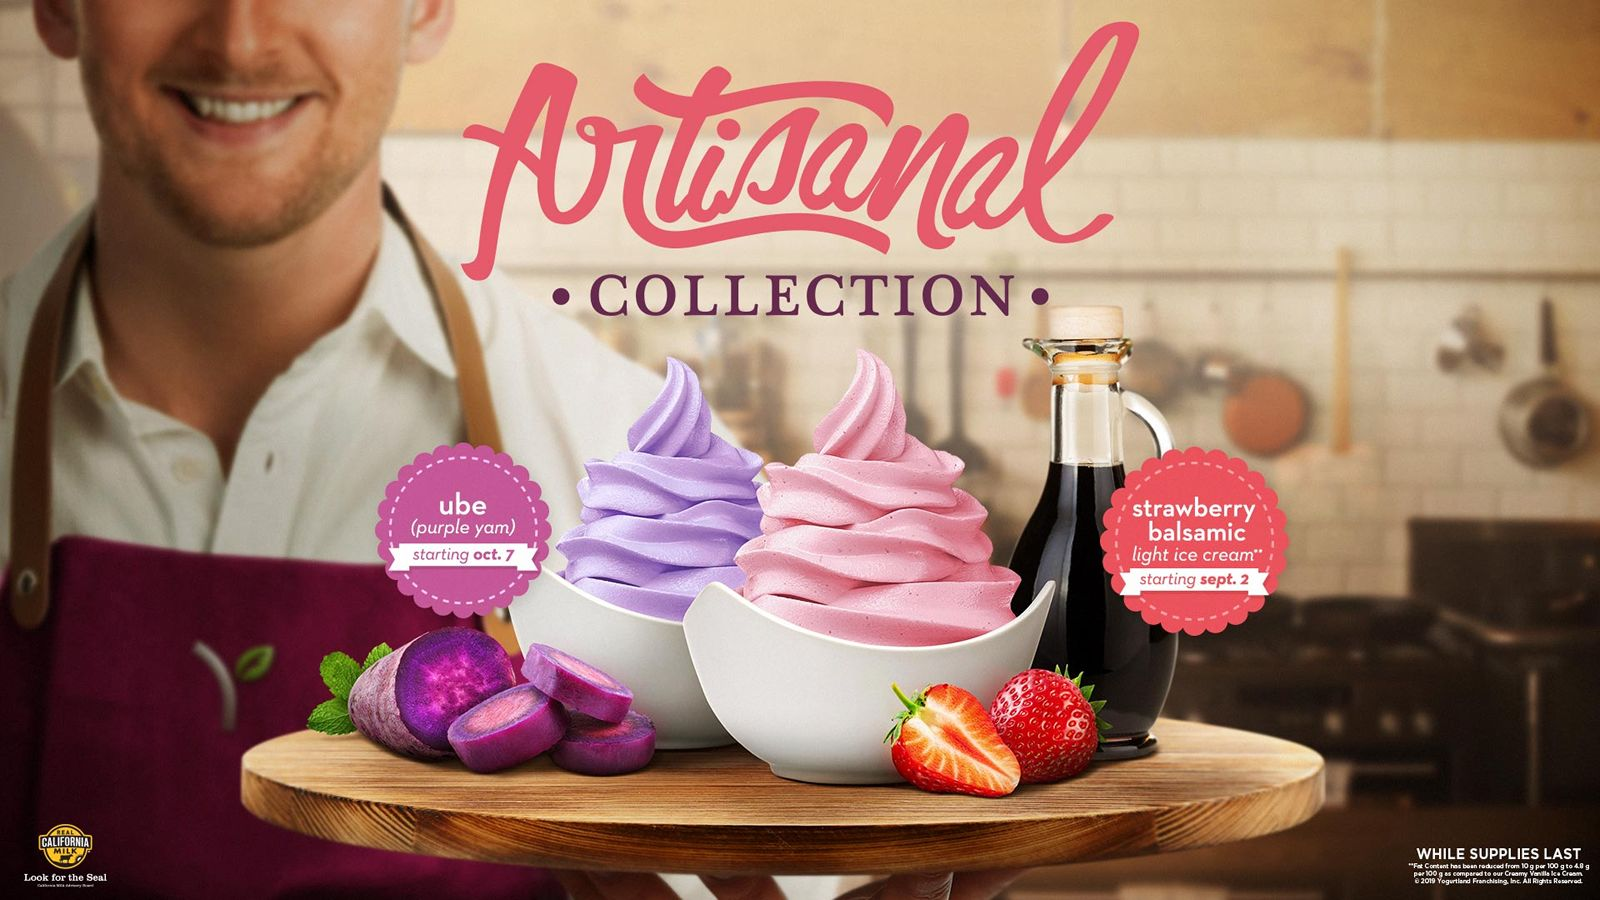 Fall into an Artisanal Experience with Yogurtland's Two New Flavors this September and October